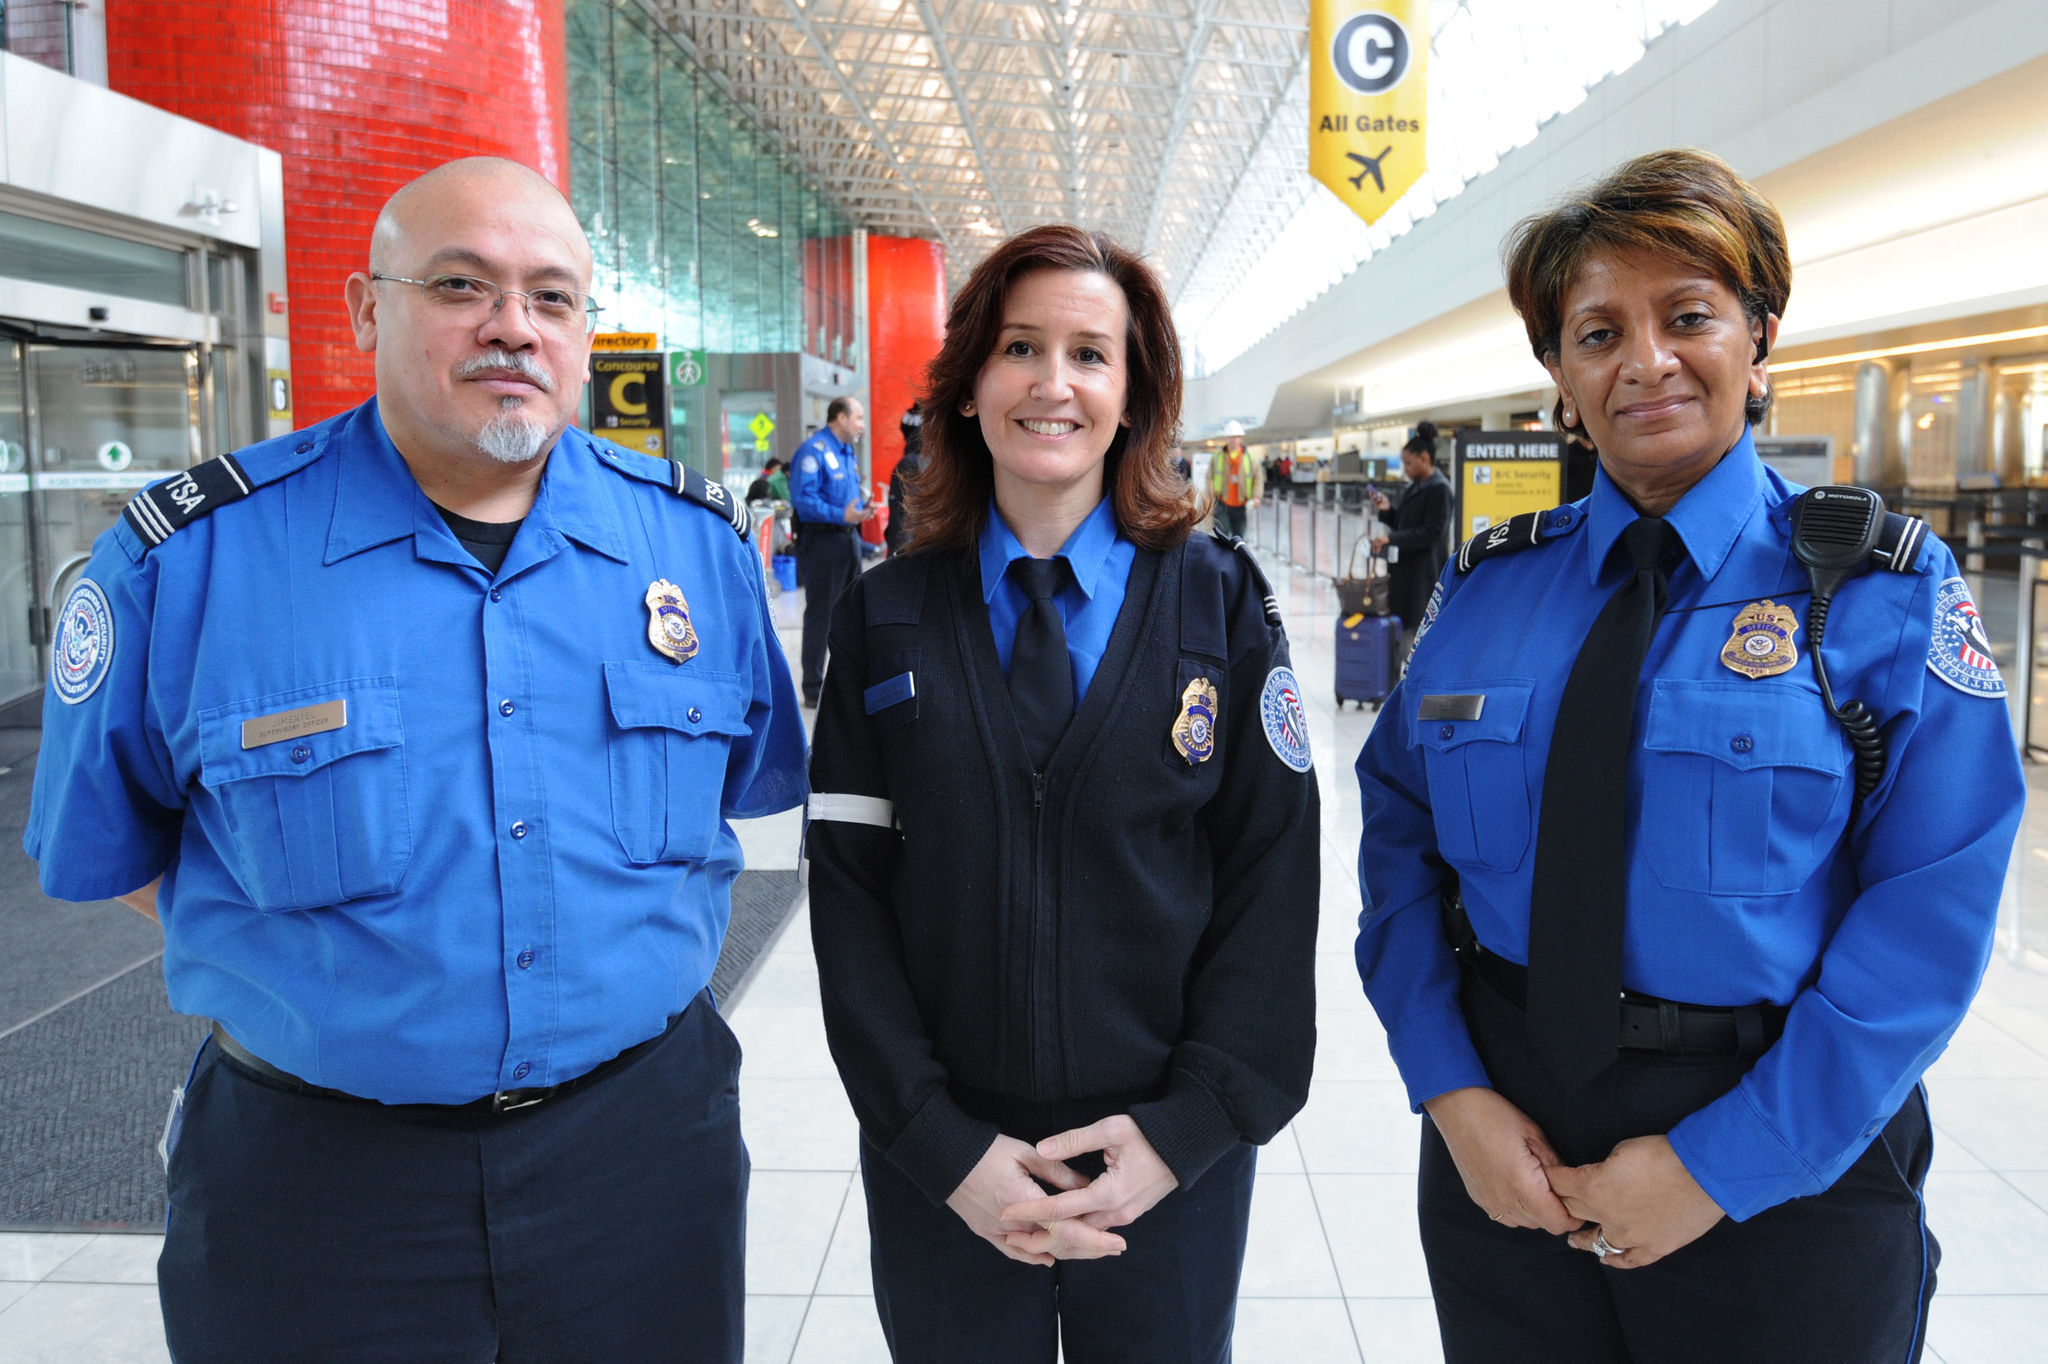 600 tsa officers screening passengers bags at bwi baltimore sun - Transportation Security Officer